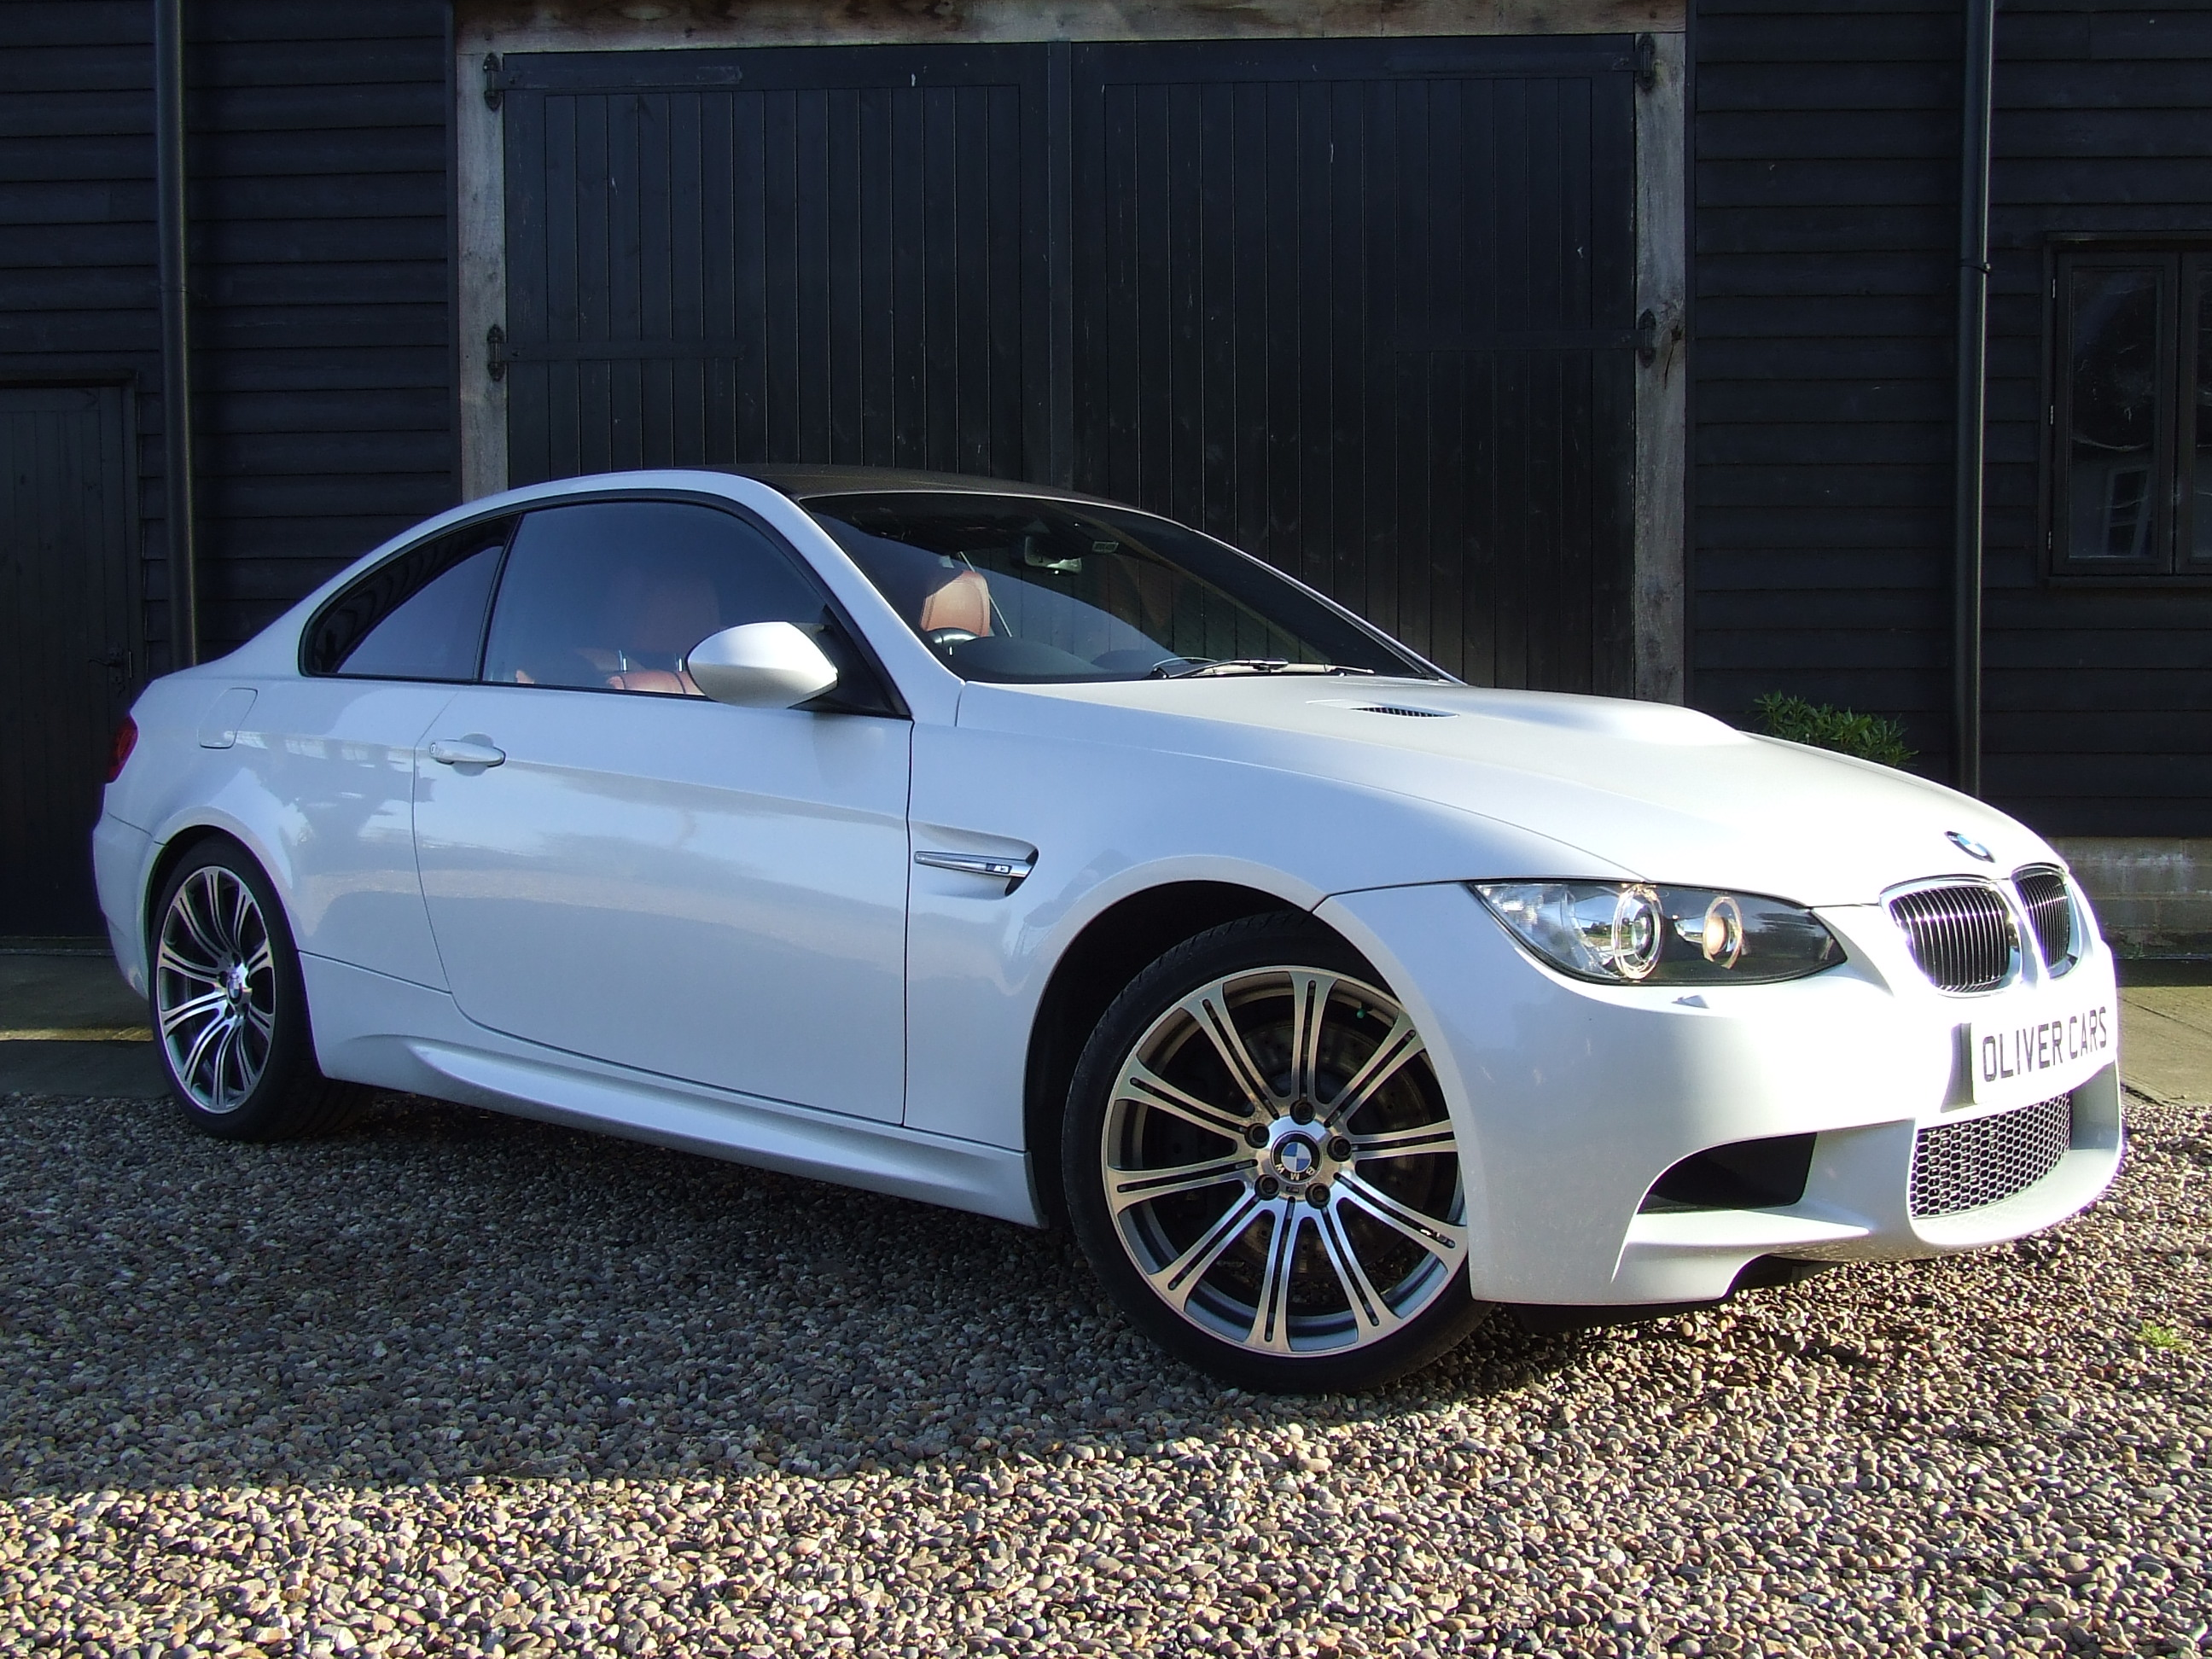 s letting sale actually her disliked it im for bmw ltw so shipping my car go coupe like id yours wing on but forum showthread thought fs and